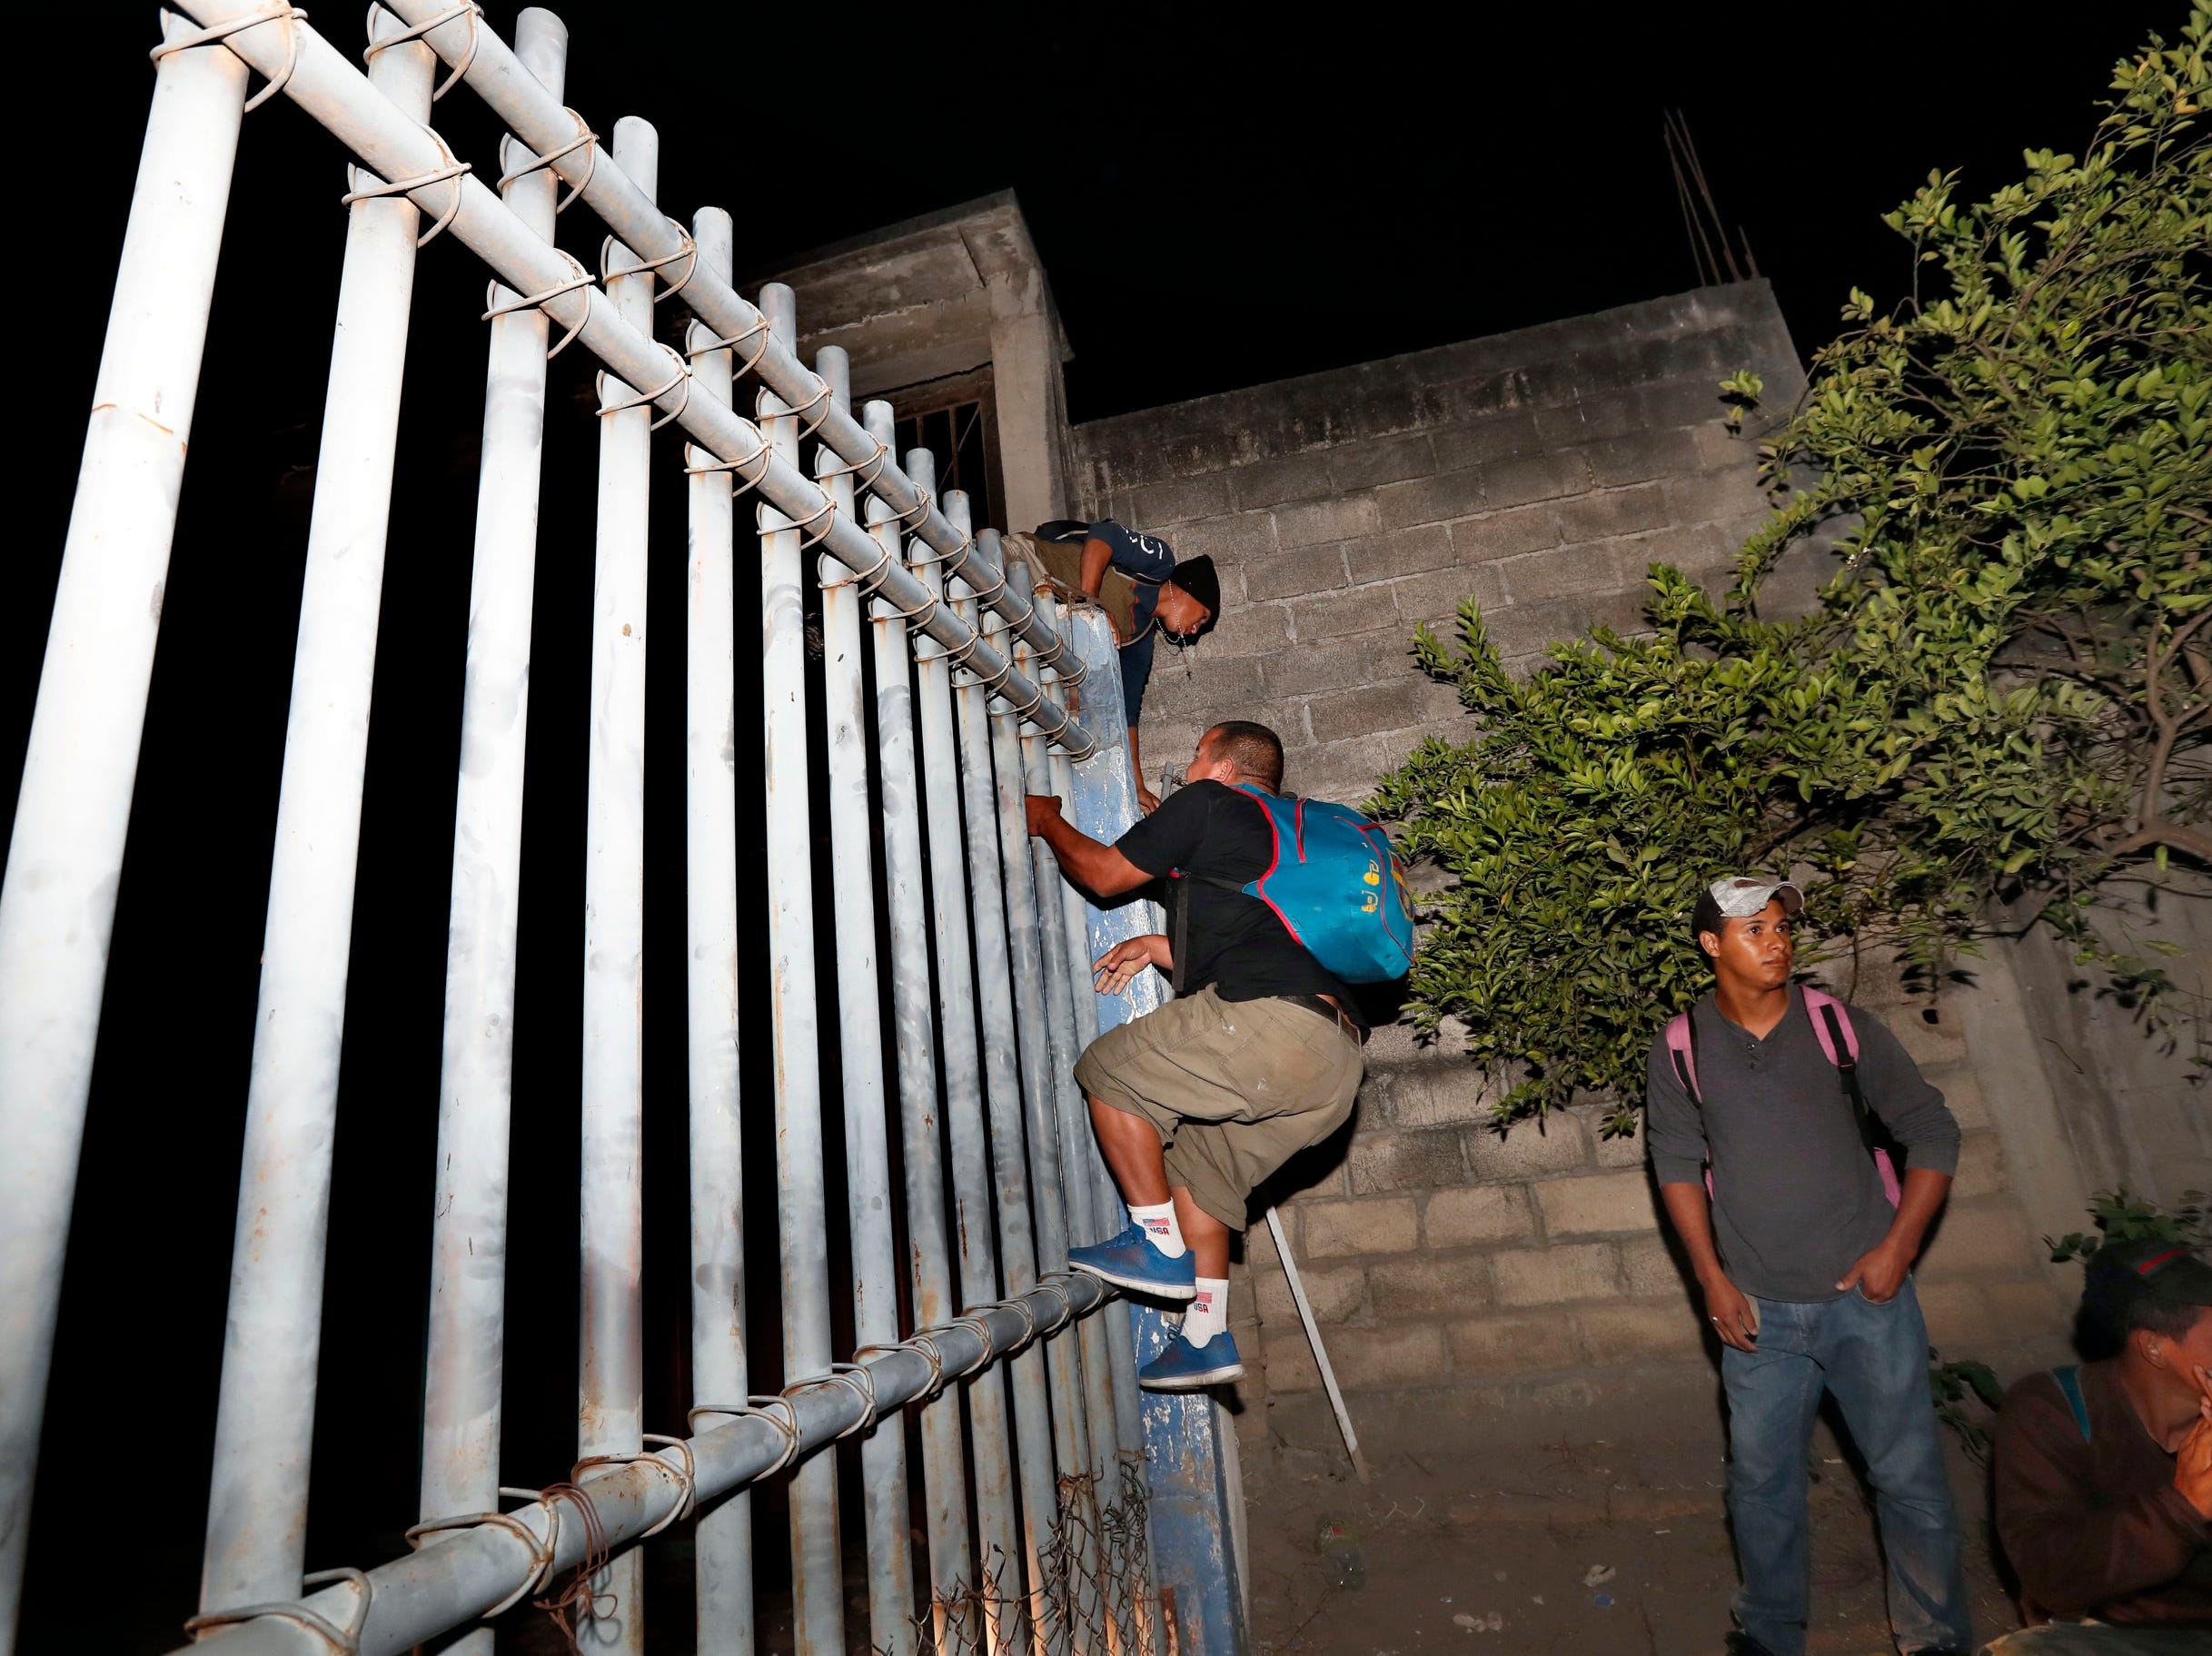 Honduras migrants climb over the fence into Mexico, at the border between Mexico and Guatemala near Ciudad Hidalgo, Chiapas State, Mexico, on Jan. 18,2019. Hundreds of Central American migrants are walking and hitchhiking through the region as part of a new caravan of migrants hoping to reach the United States.